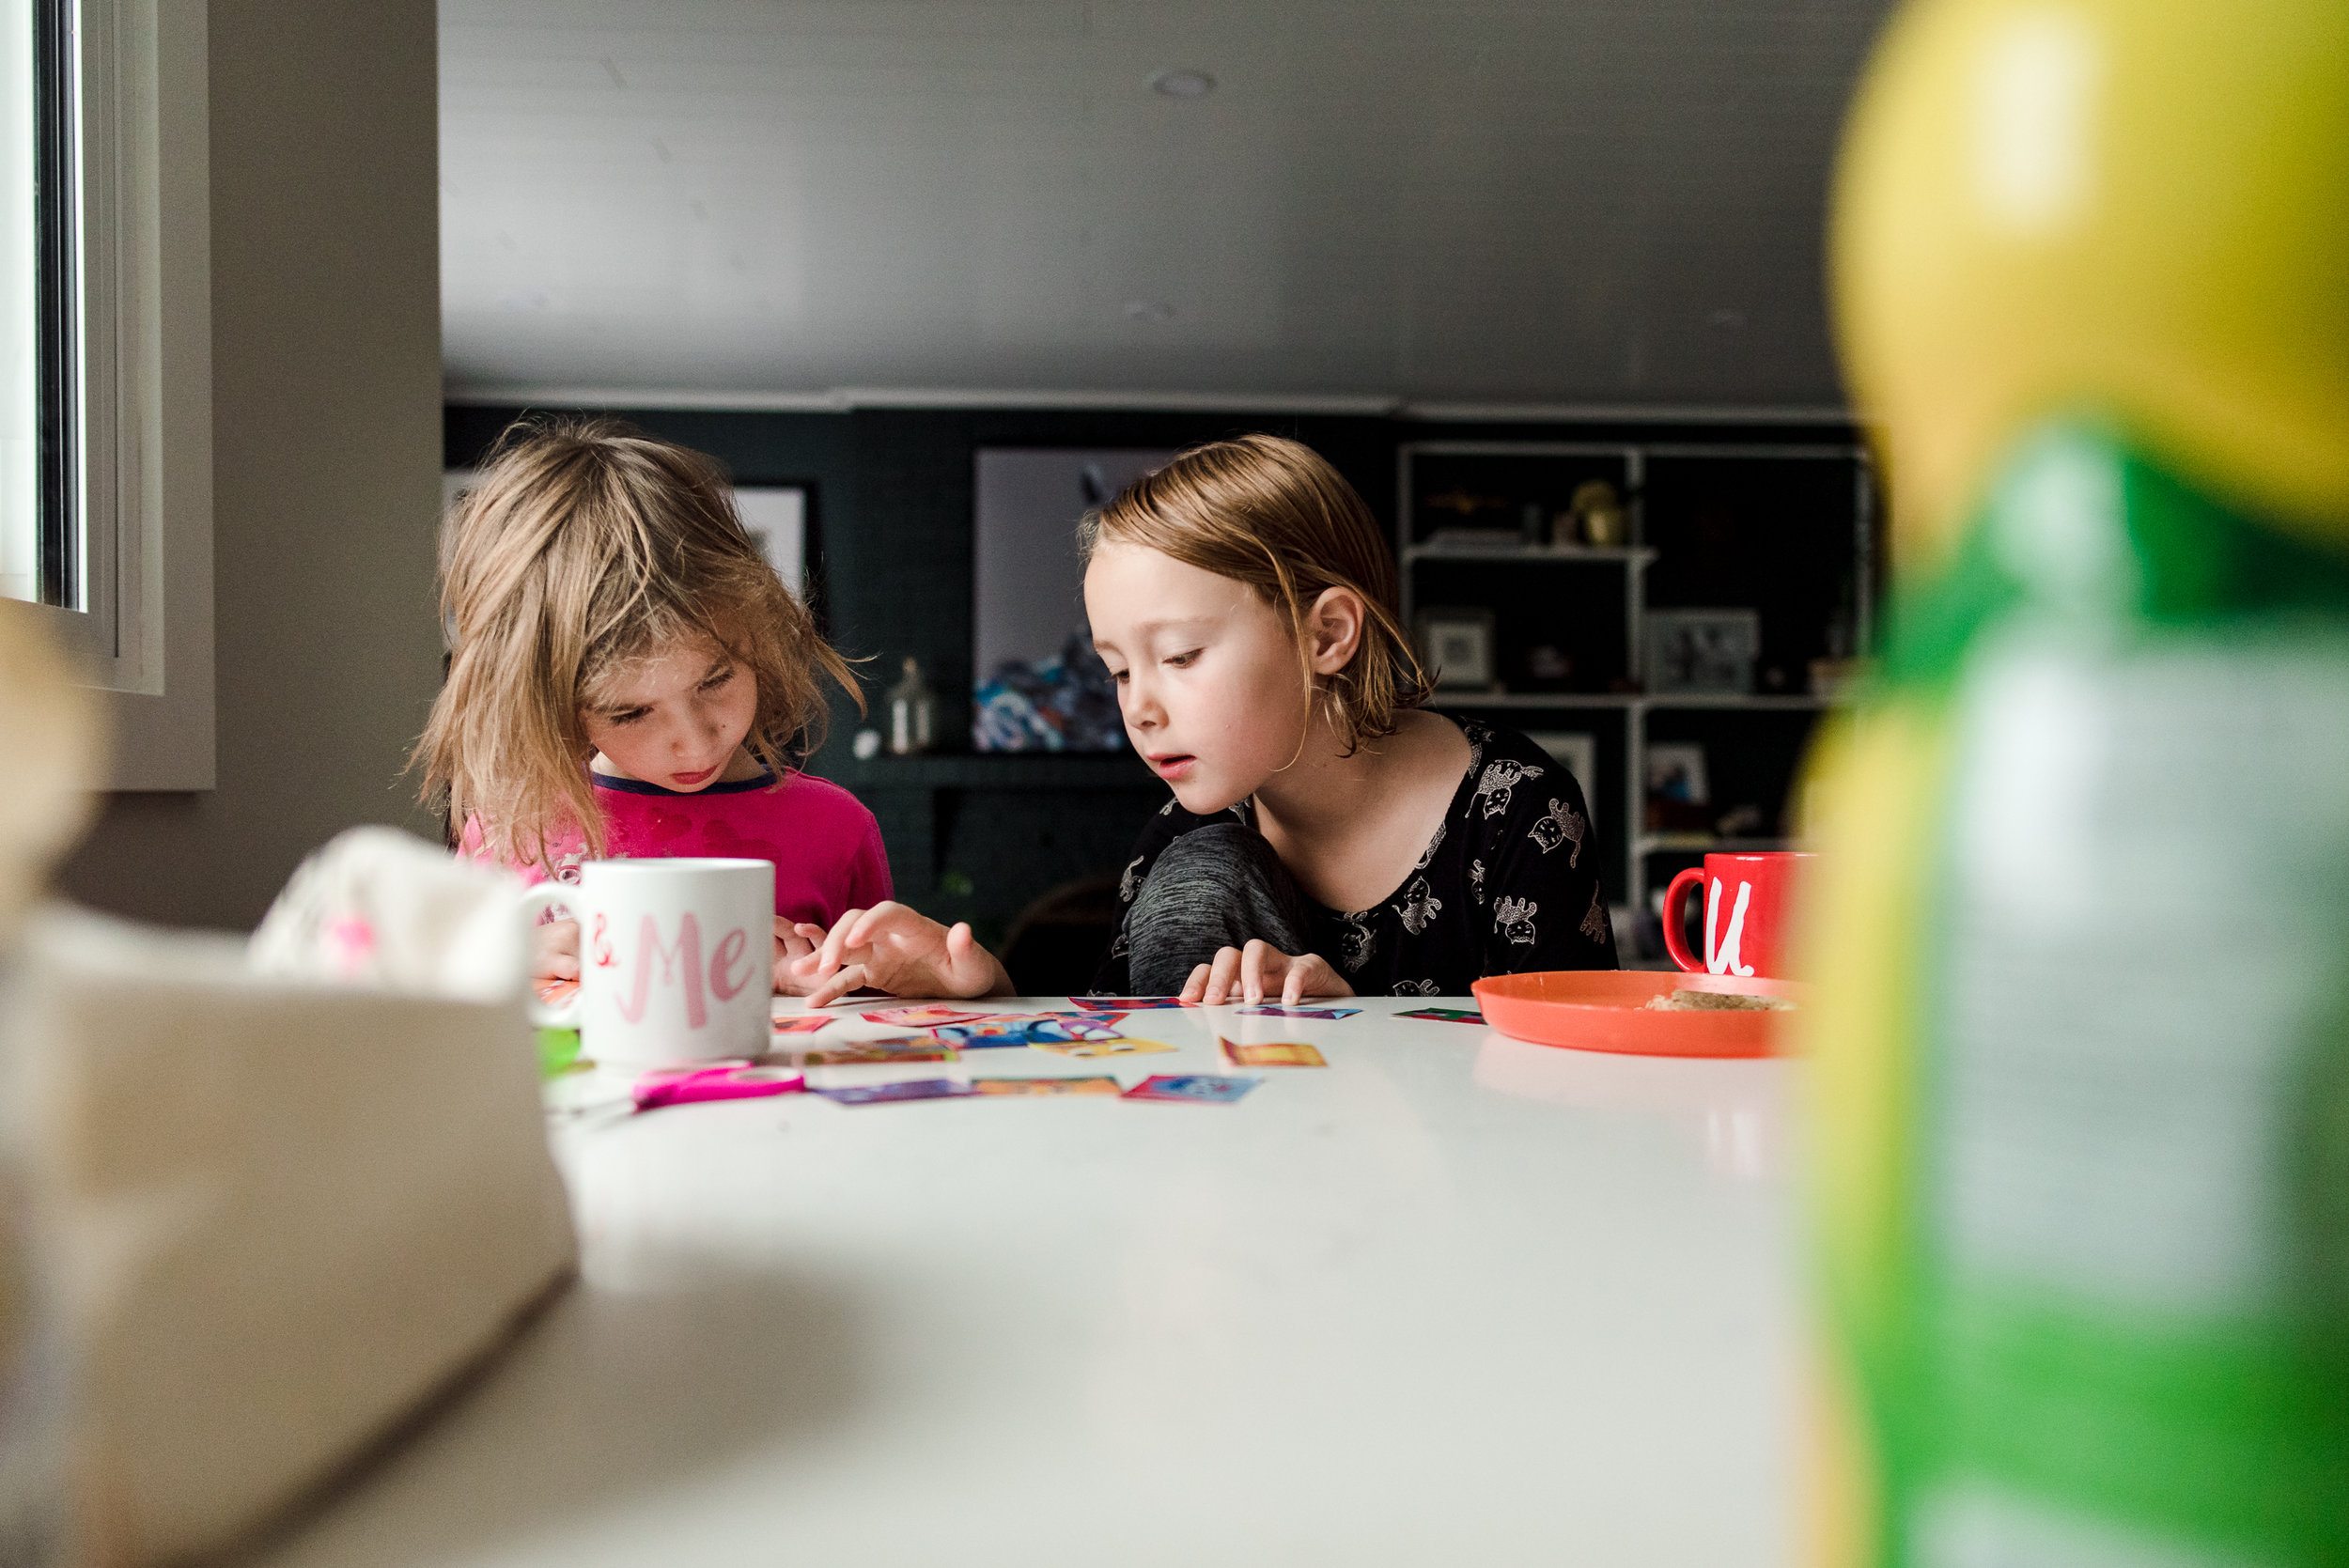 Sisters sit at a kitchen counter as part of a photography series. Photography tutorials.